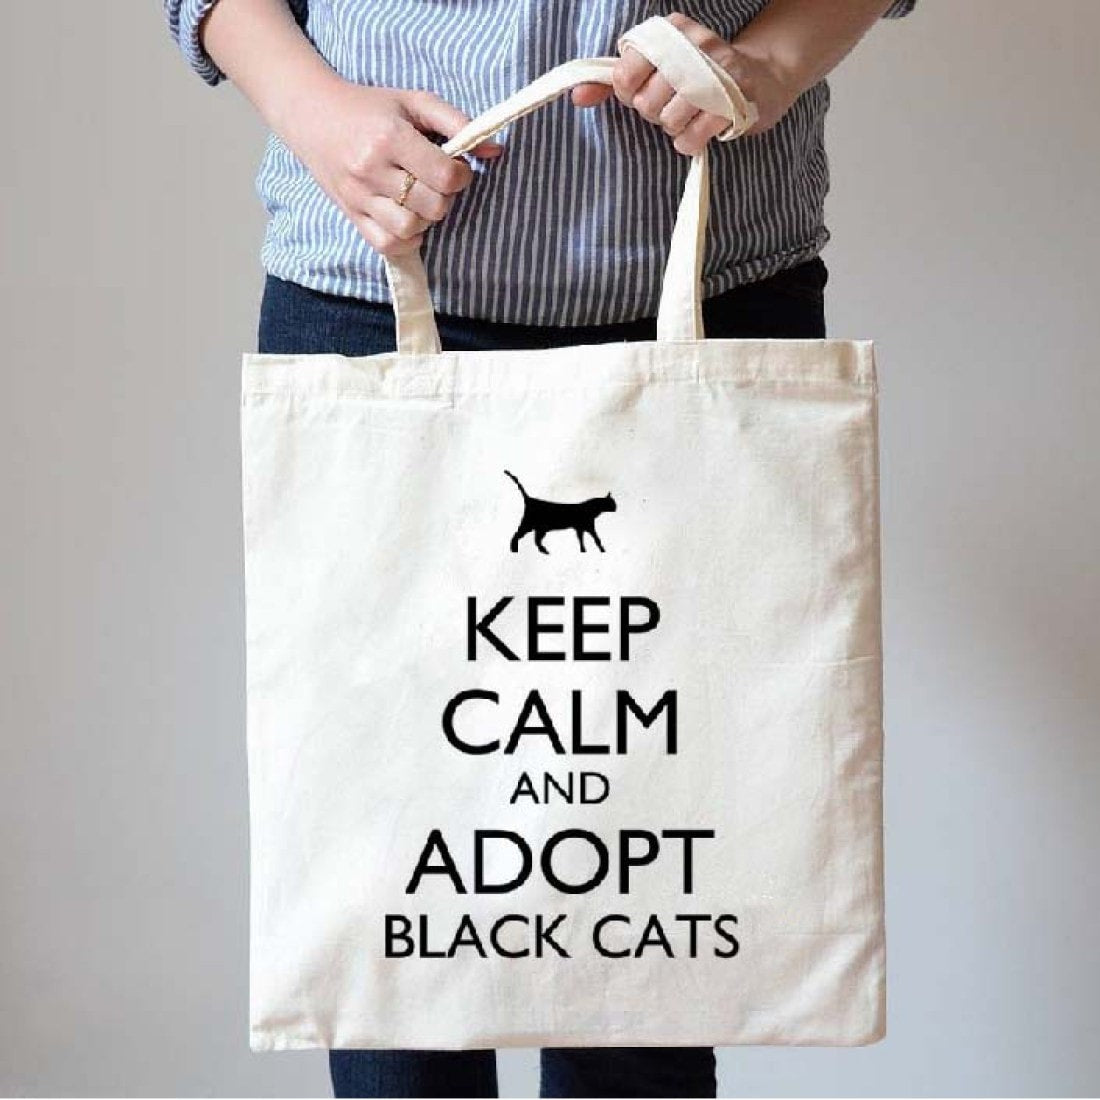 Keep Calm and Adopt Black Cats Print Natural Canvas Tote Shopper Bag